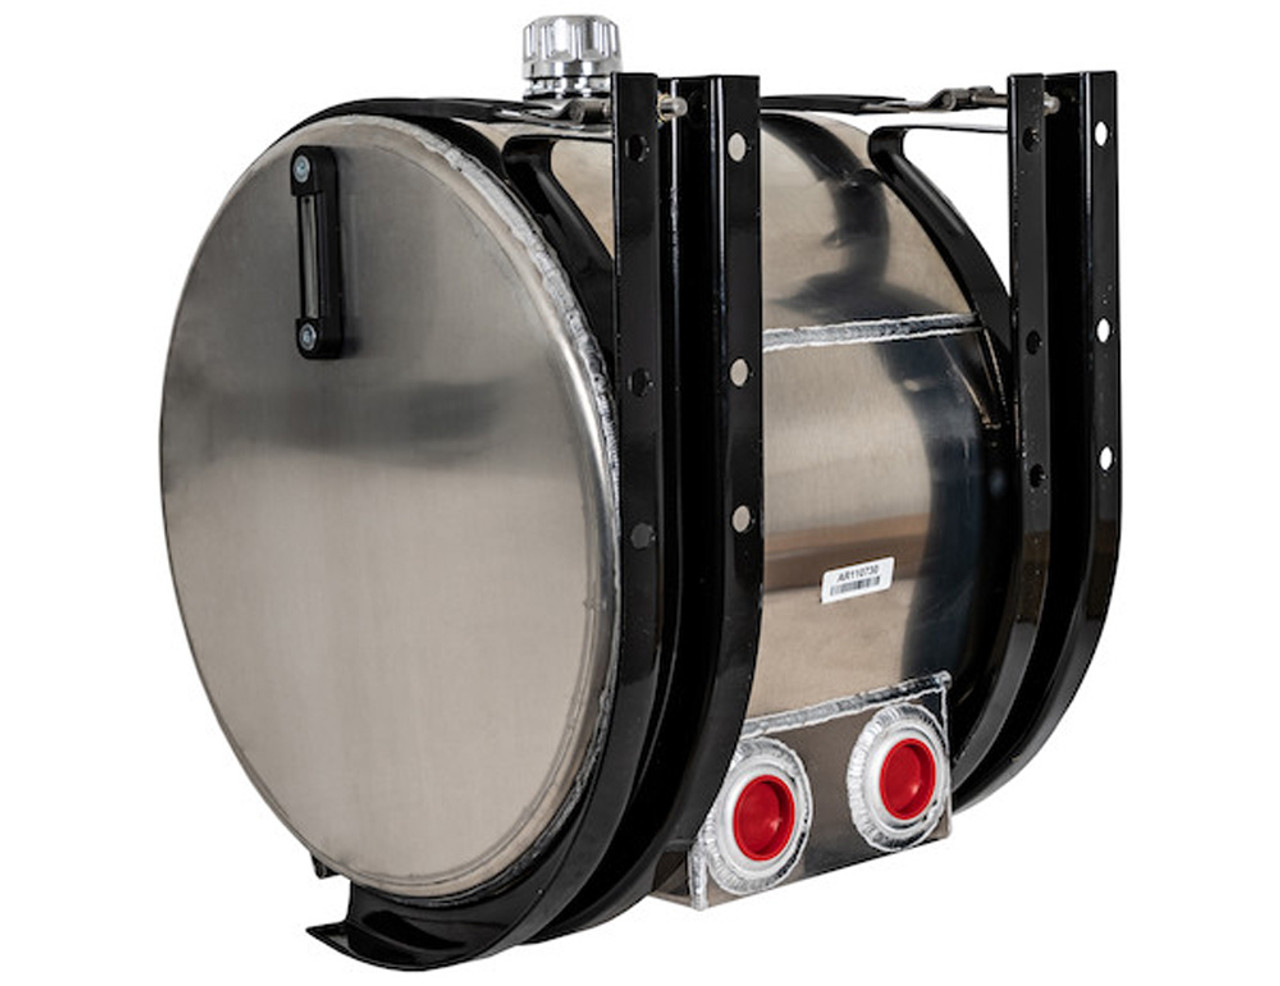 BUYERS SMC25AR 25 Gallon Side Mount Aluminum Reservoir with Rear Ports